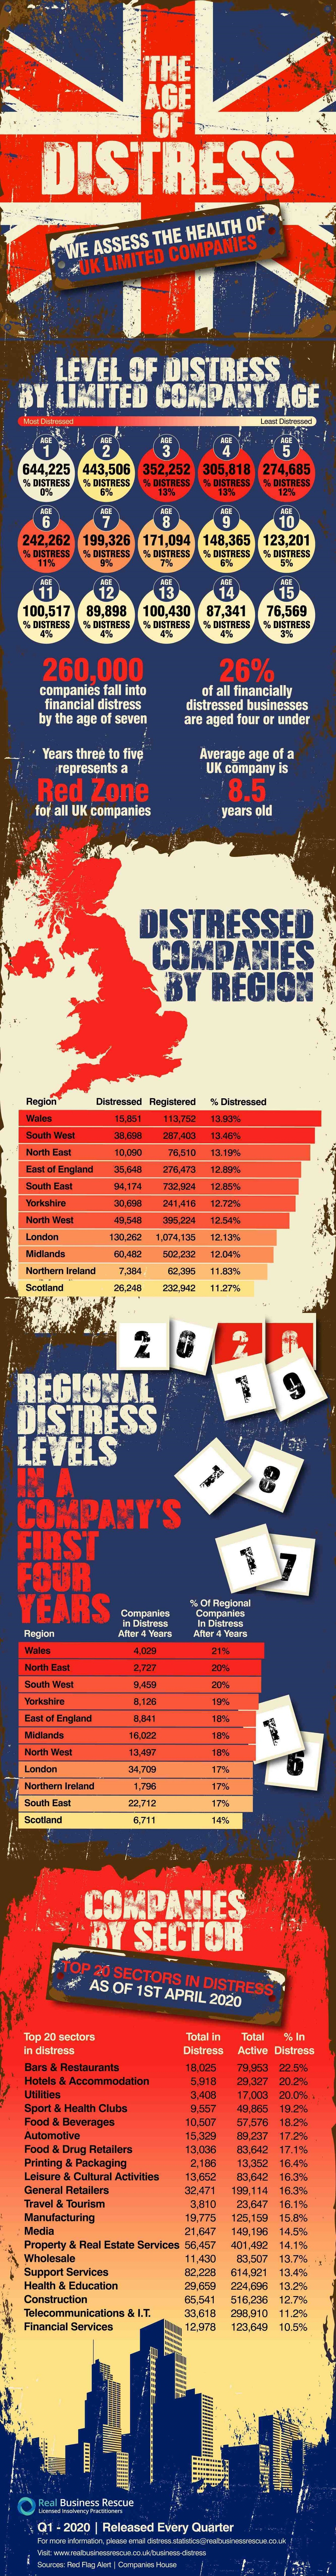 The Age Of Distress - Q1 2020 #infographic